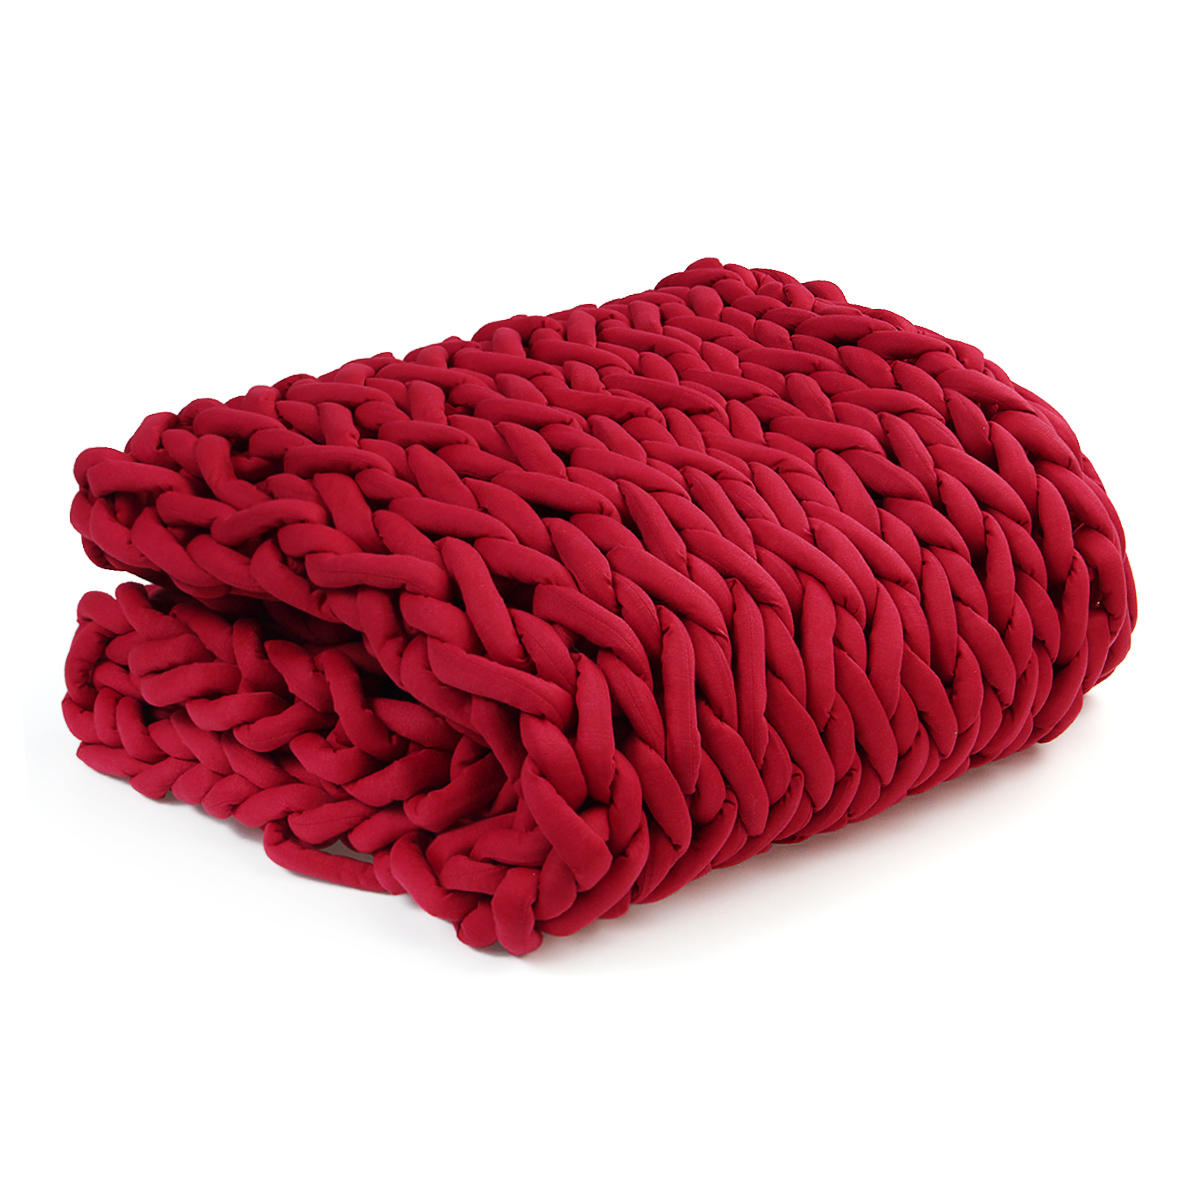 100x120cm Handmade Knitted Blankets Soft Warm Thick Line Cotton Throw Blankets - 6